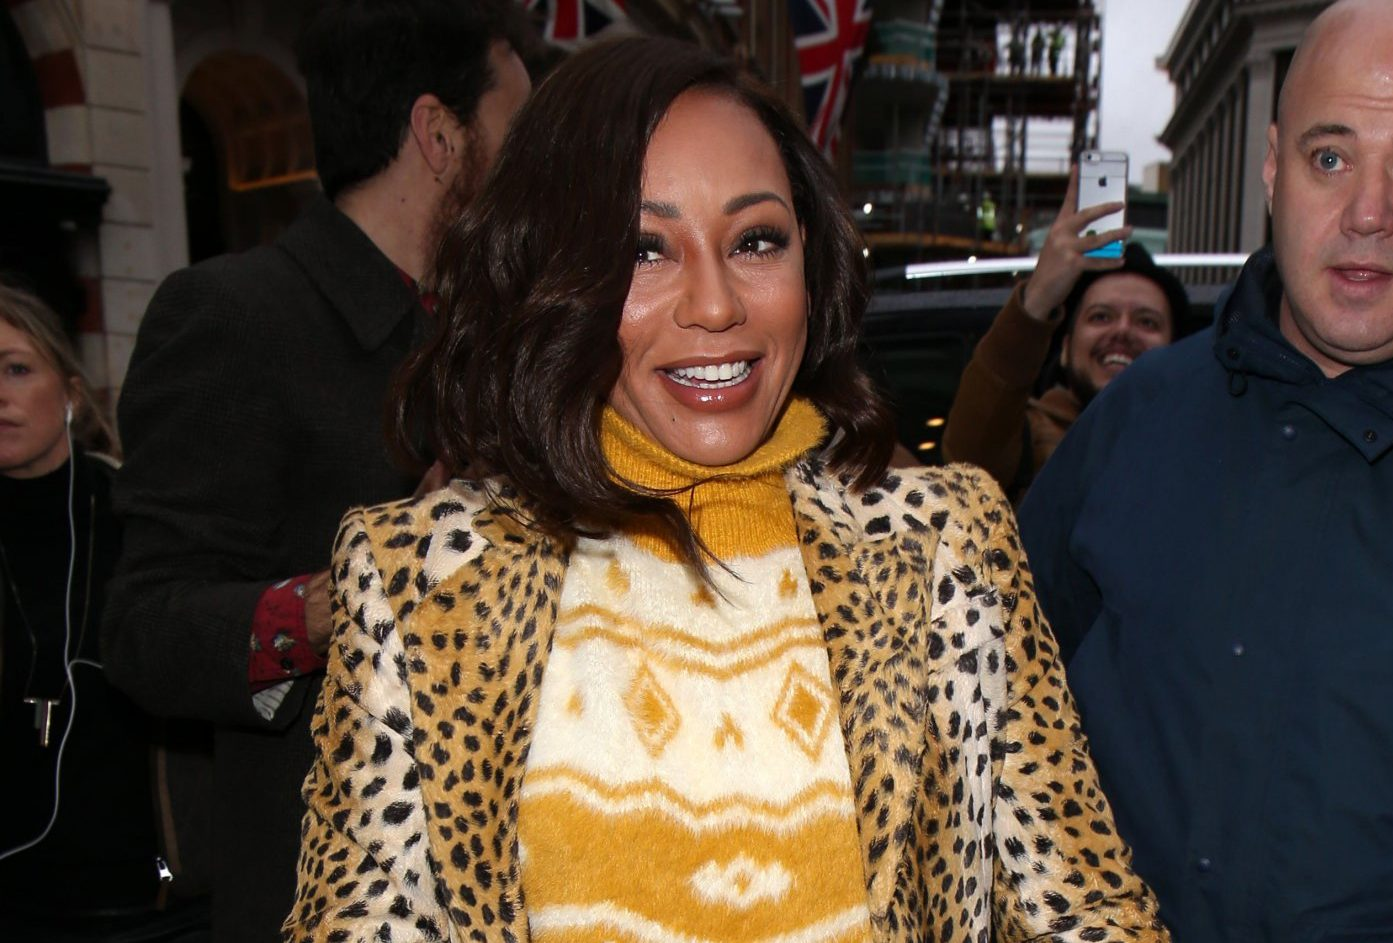 Mel B insists she's 'quite rich' after joking she needs Spice Girls money the most